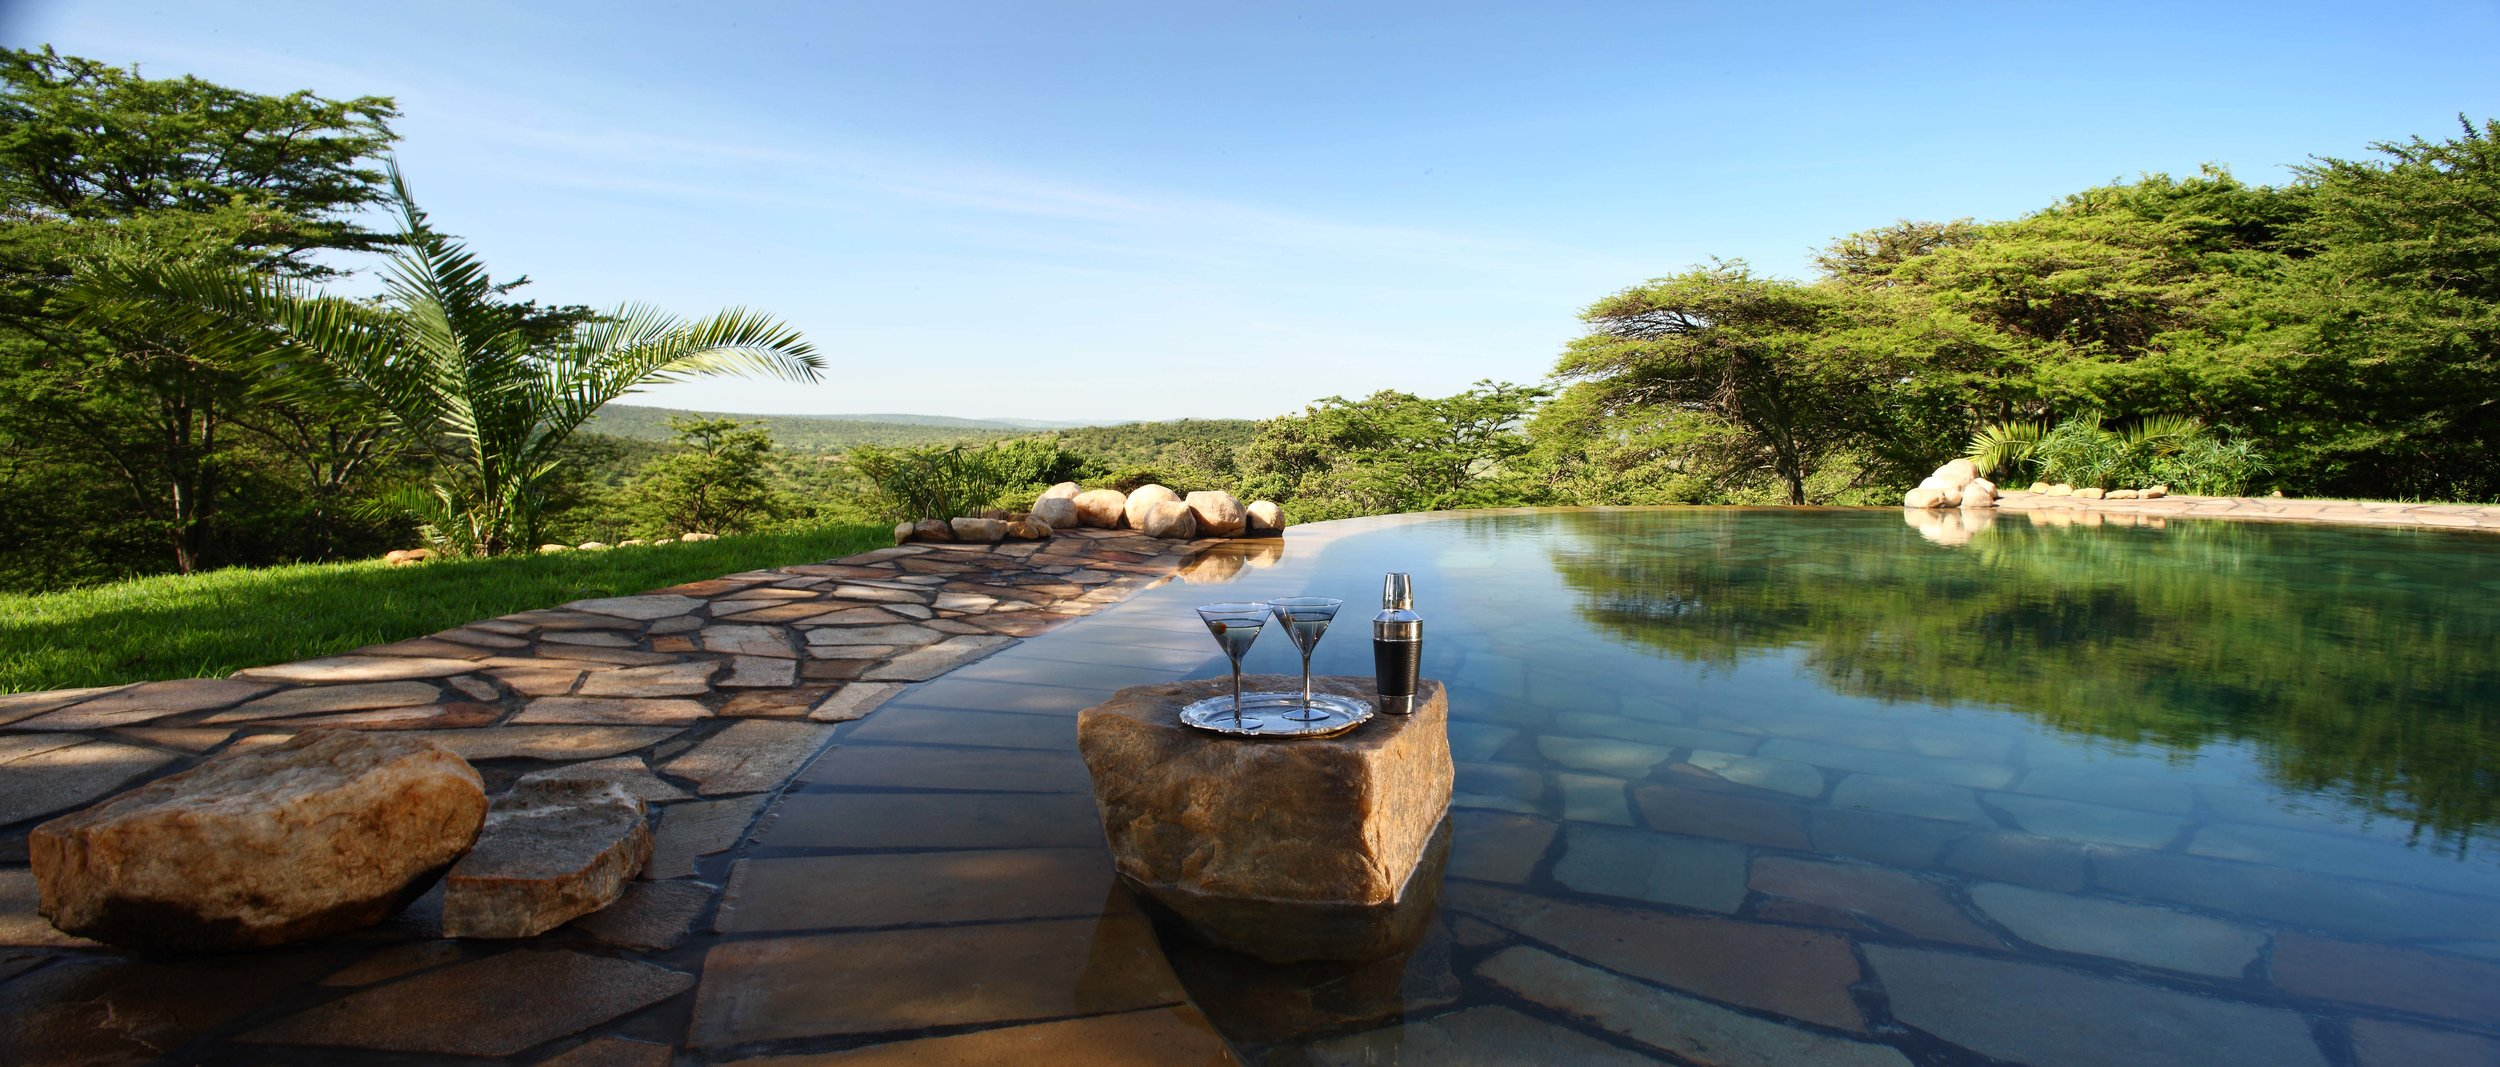 Cottars - New swimming pool with cocktail glasses.jpg